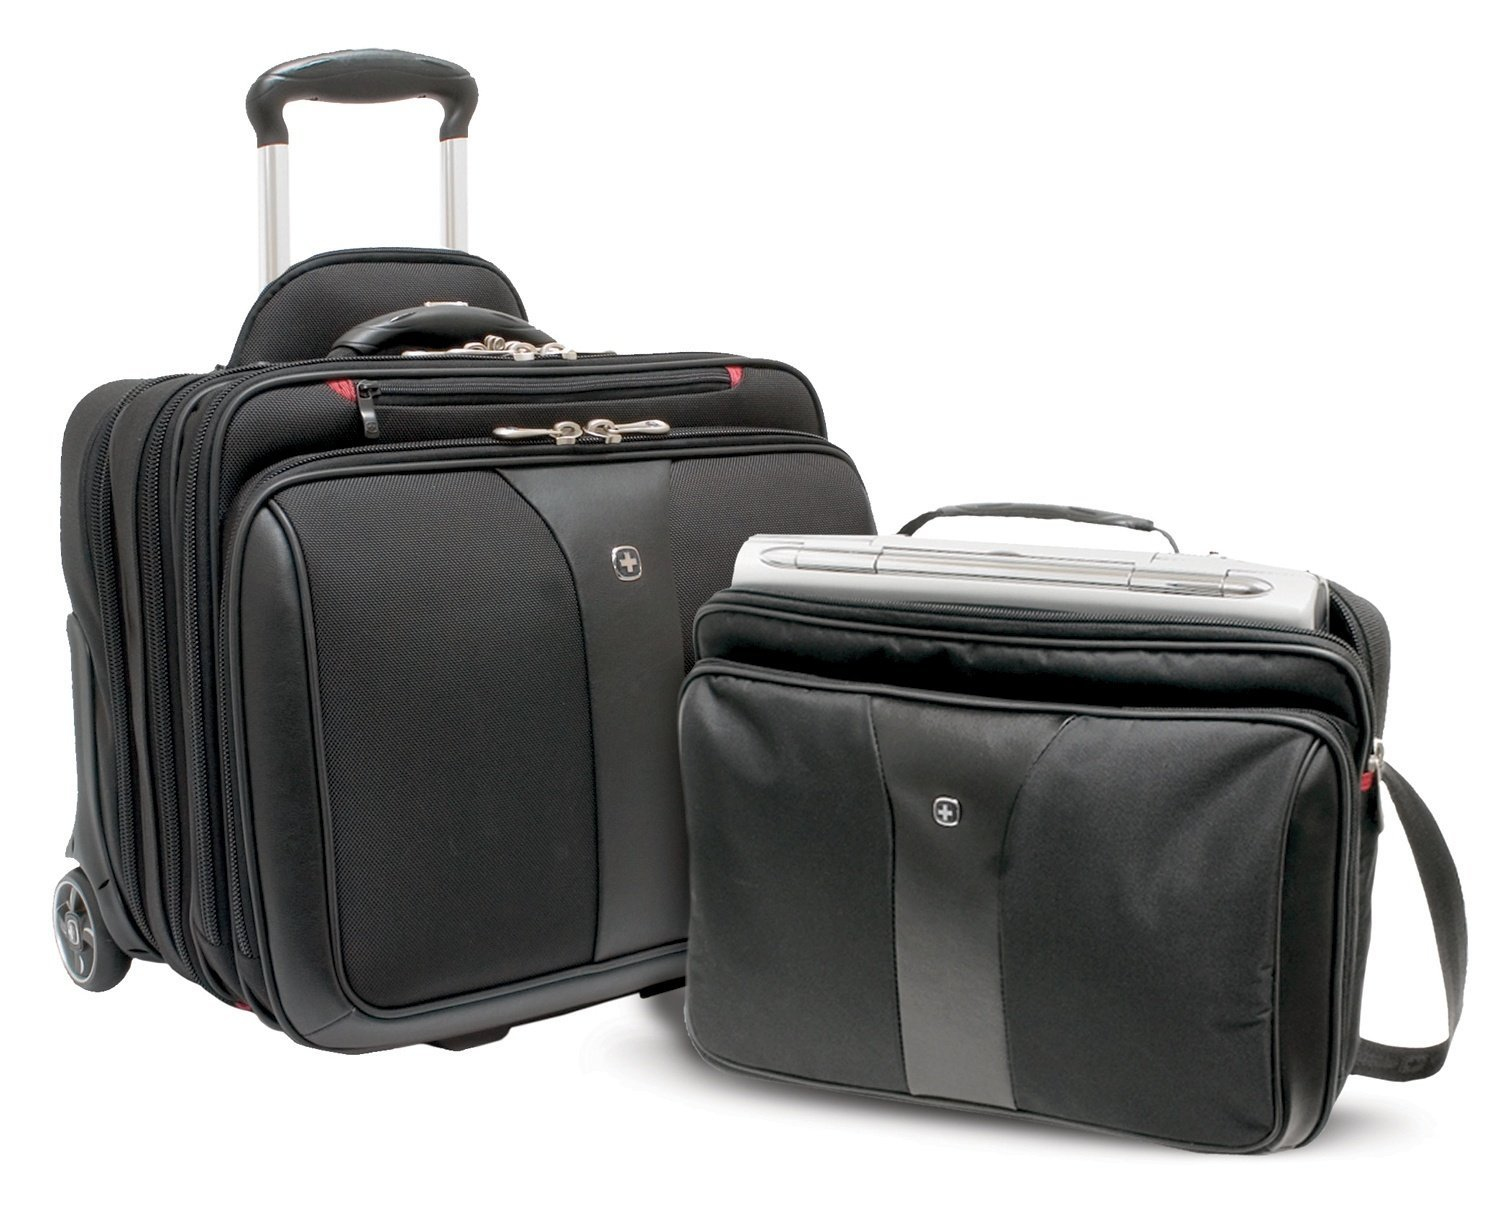 Wenger Patriot Roller 2 Piece Travel Set 600662 - CMS01